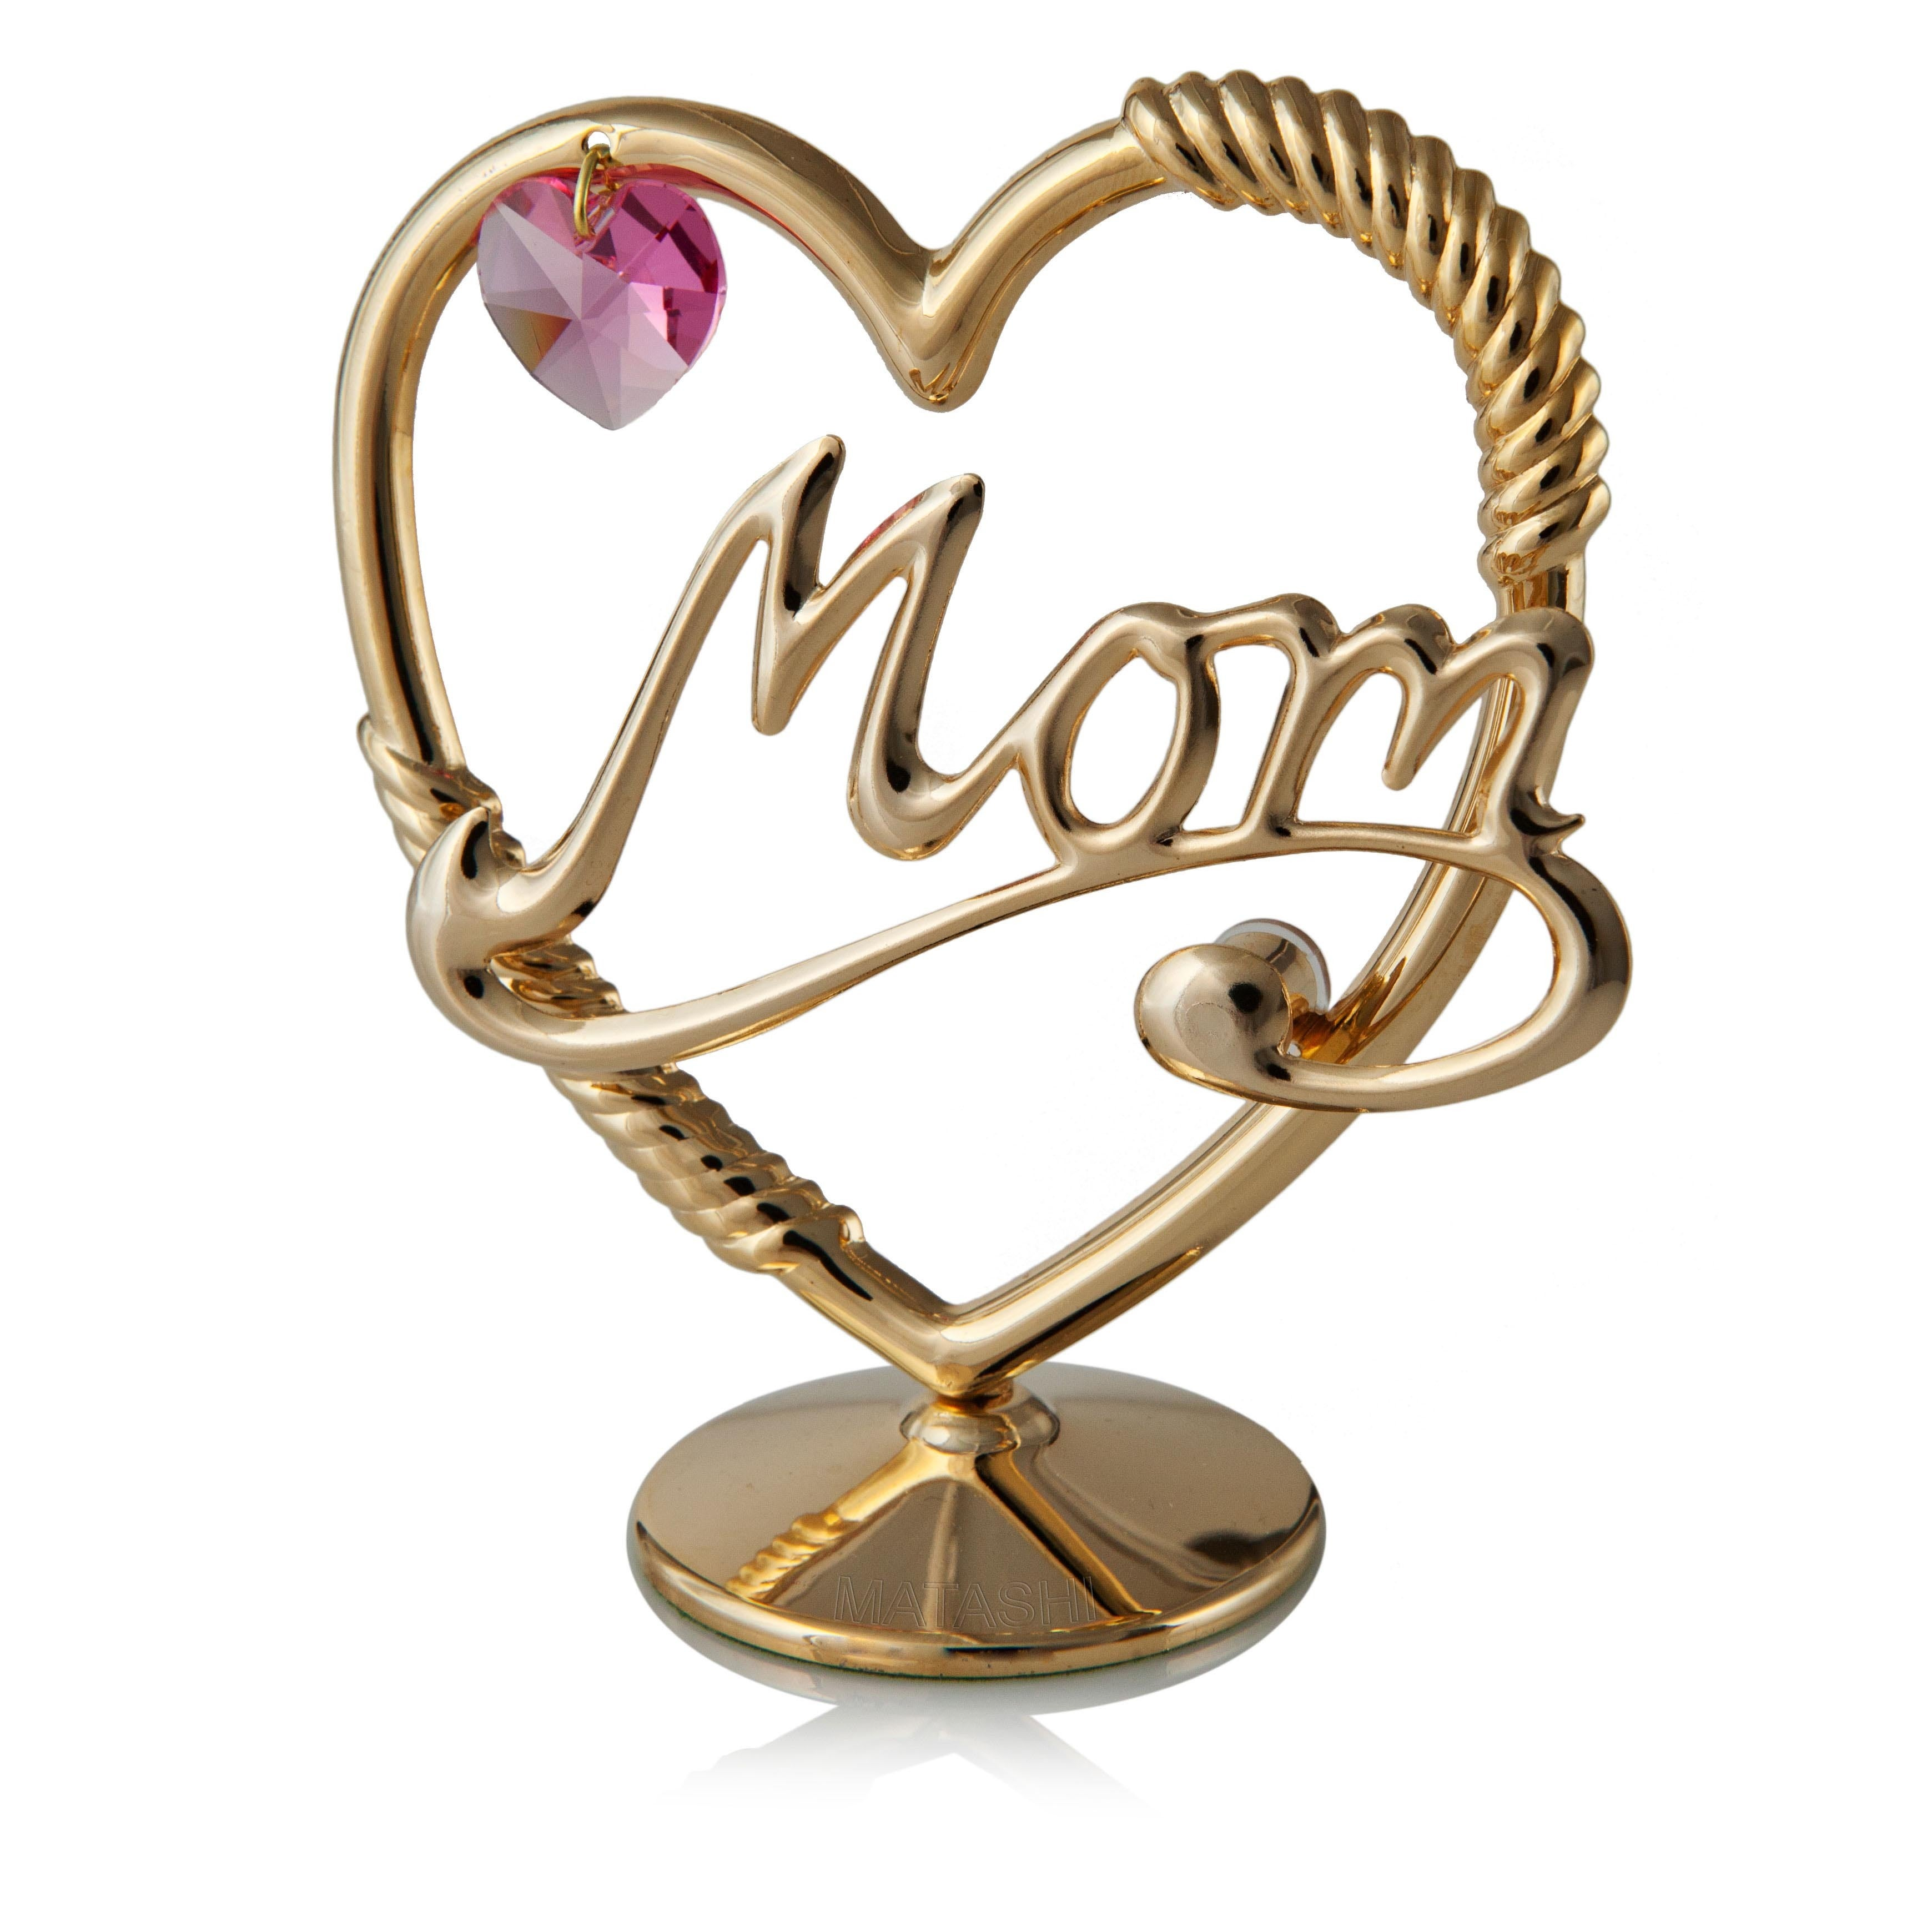 24k Goldplated Mom in a Heart Table Top Ornament Made with Genuine Pink Matashi Crystals (Gold Mom in a Heart with Pink Crystal)